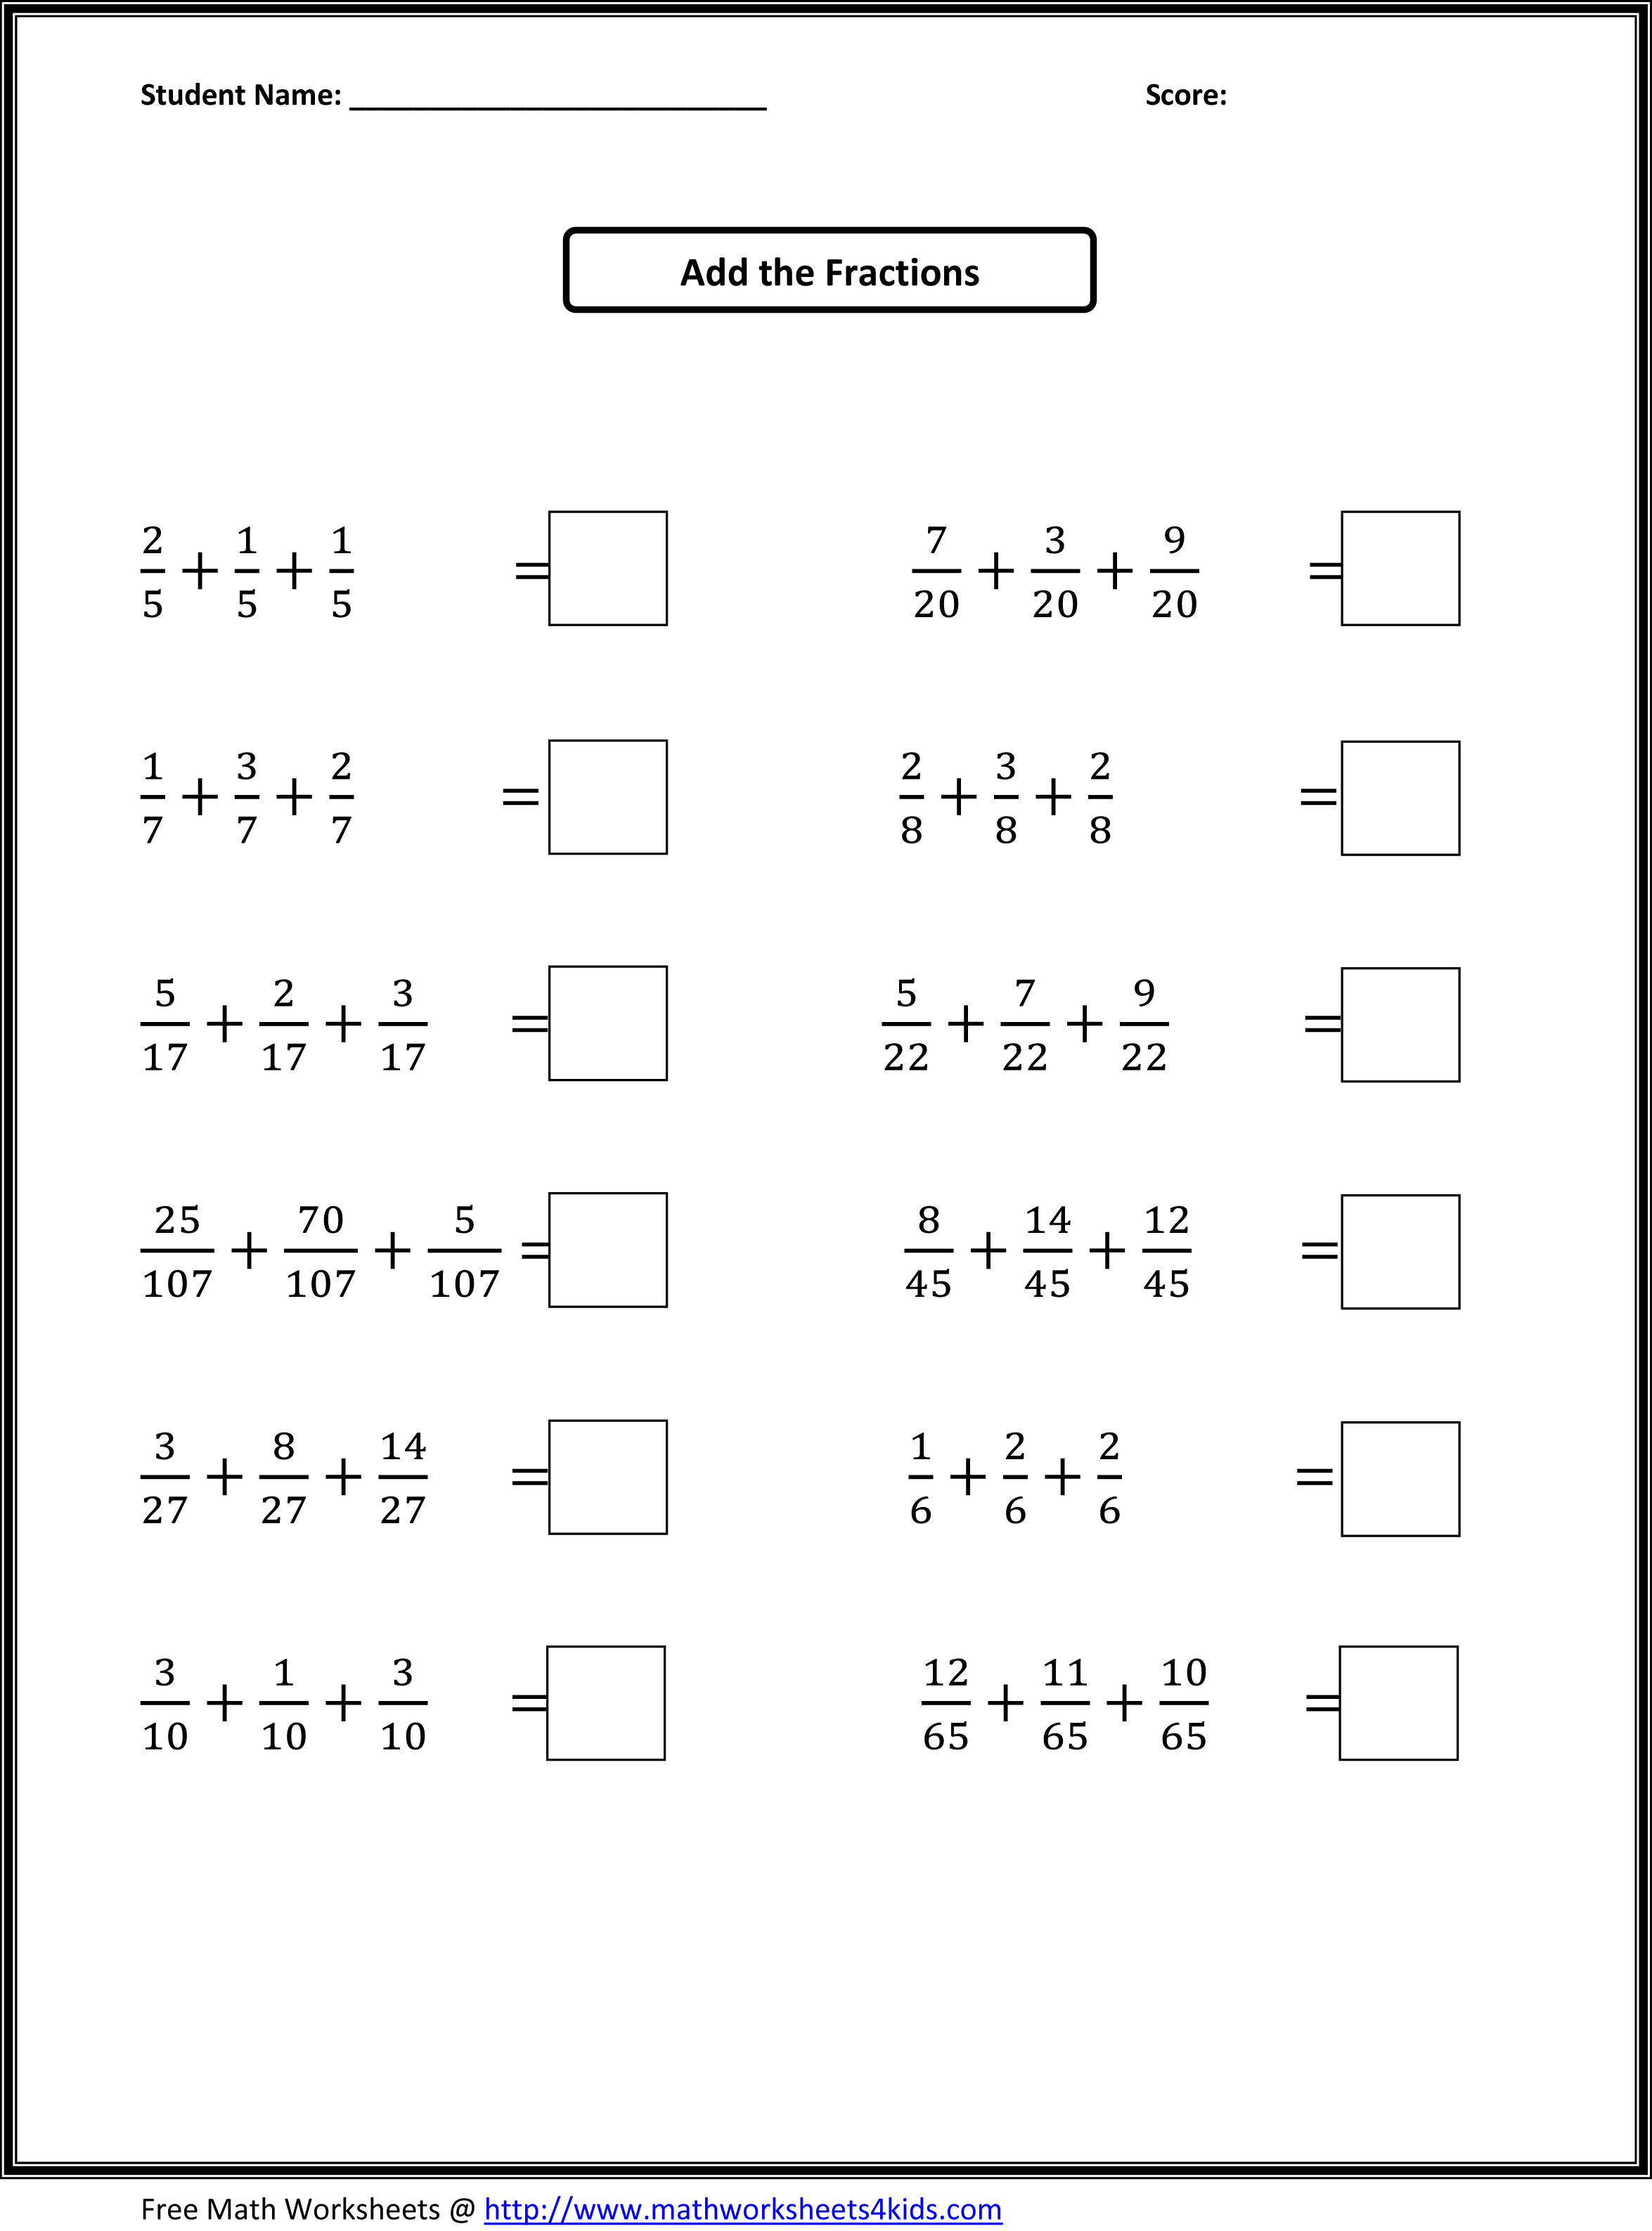 Math For Grade 4 Worksheets - Thimothy Worksheet